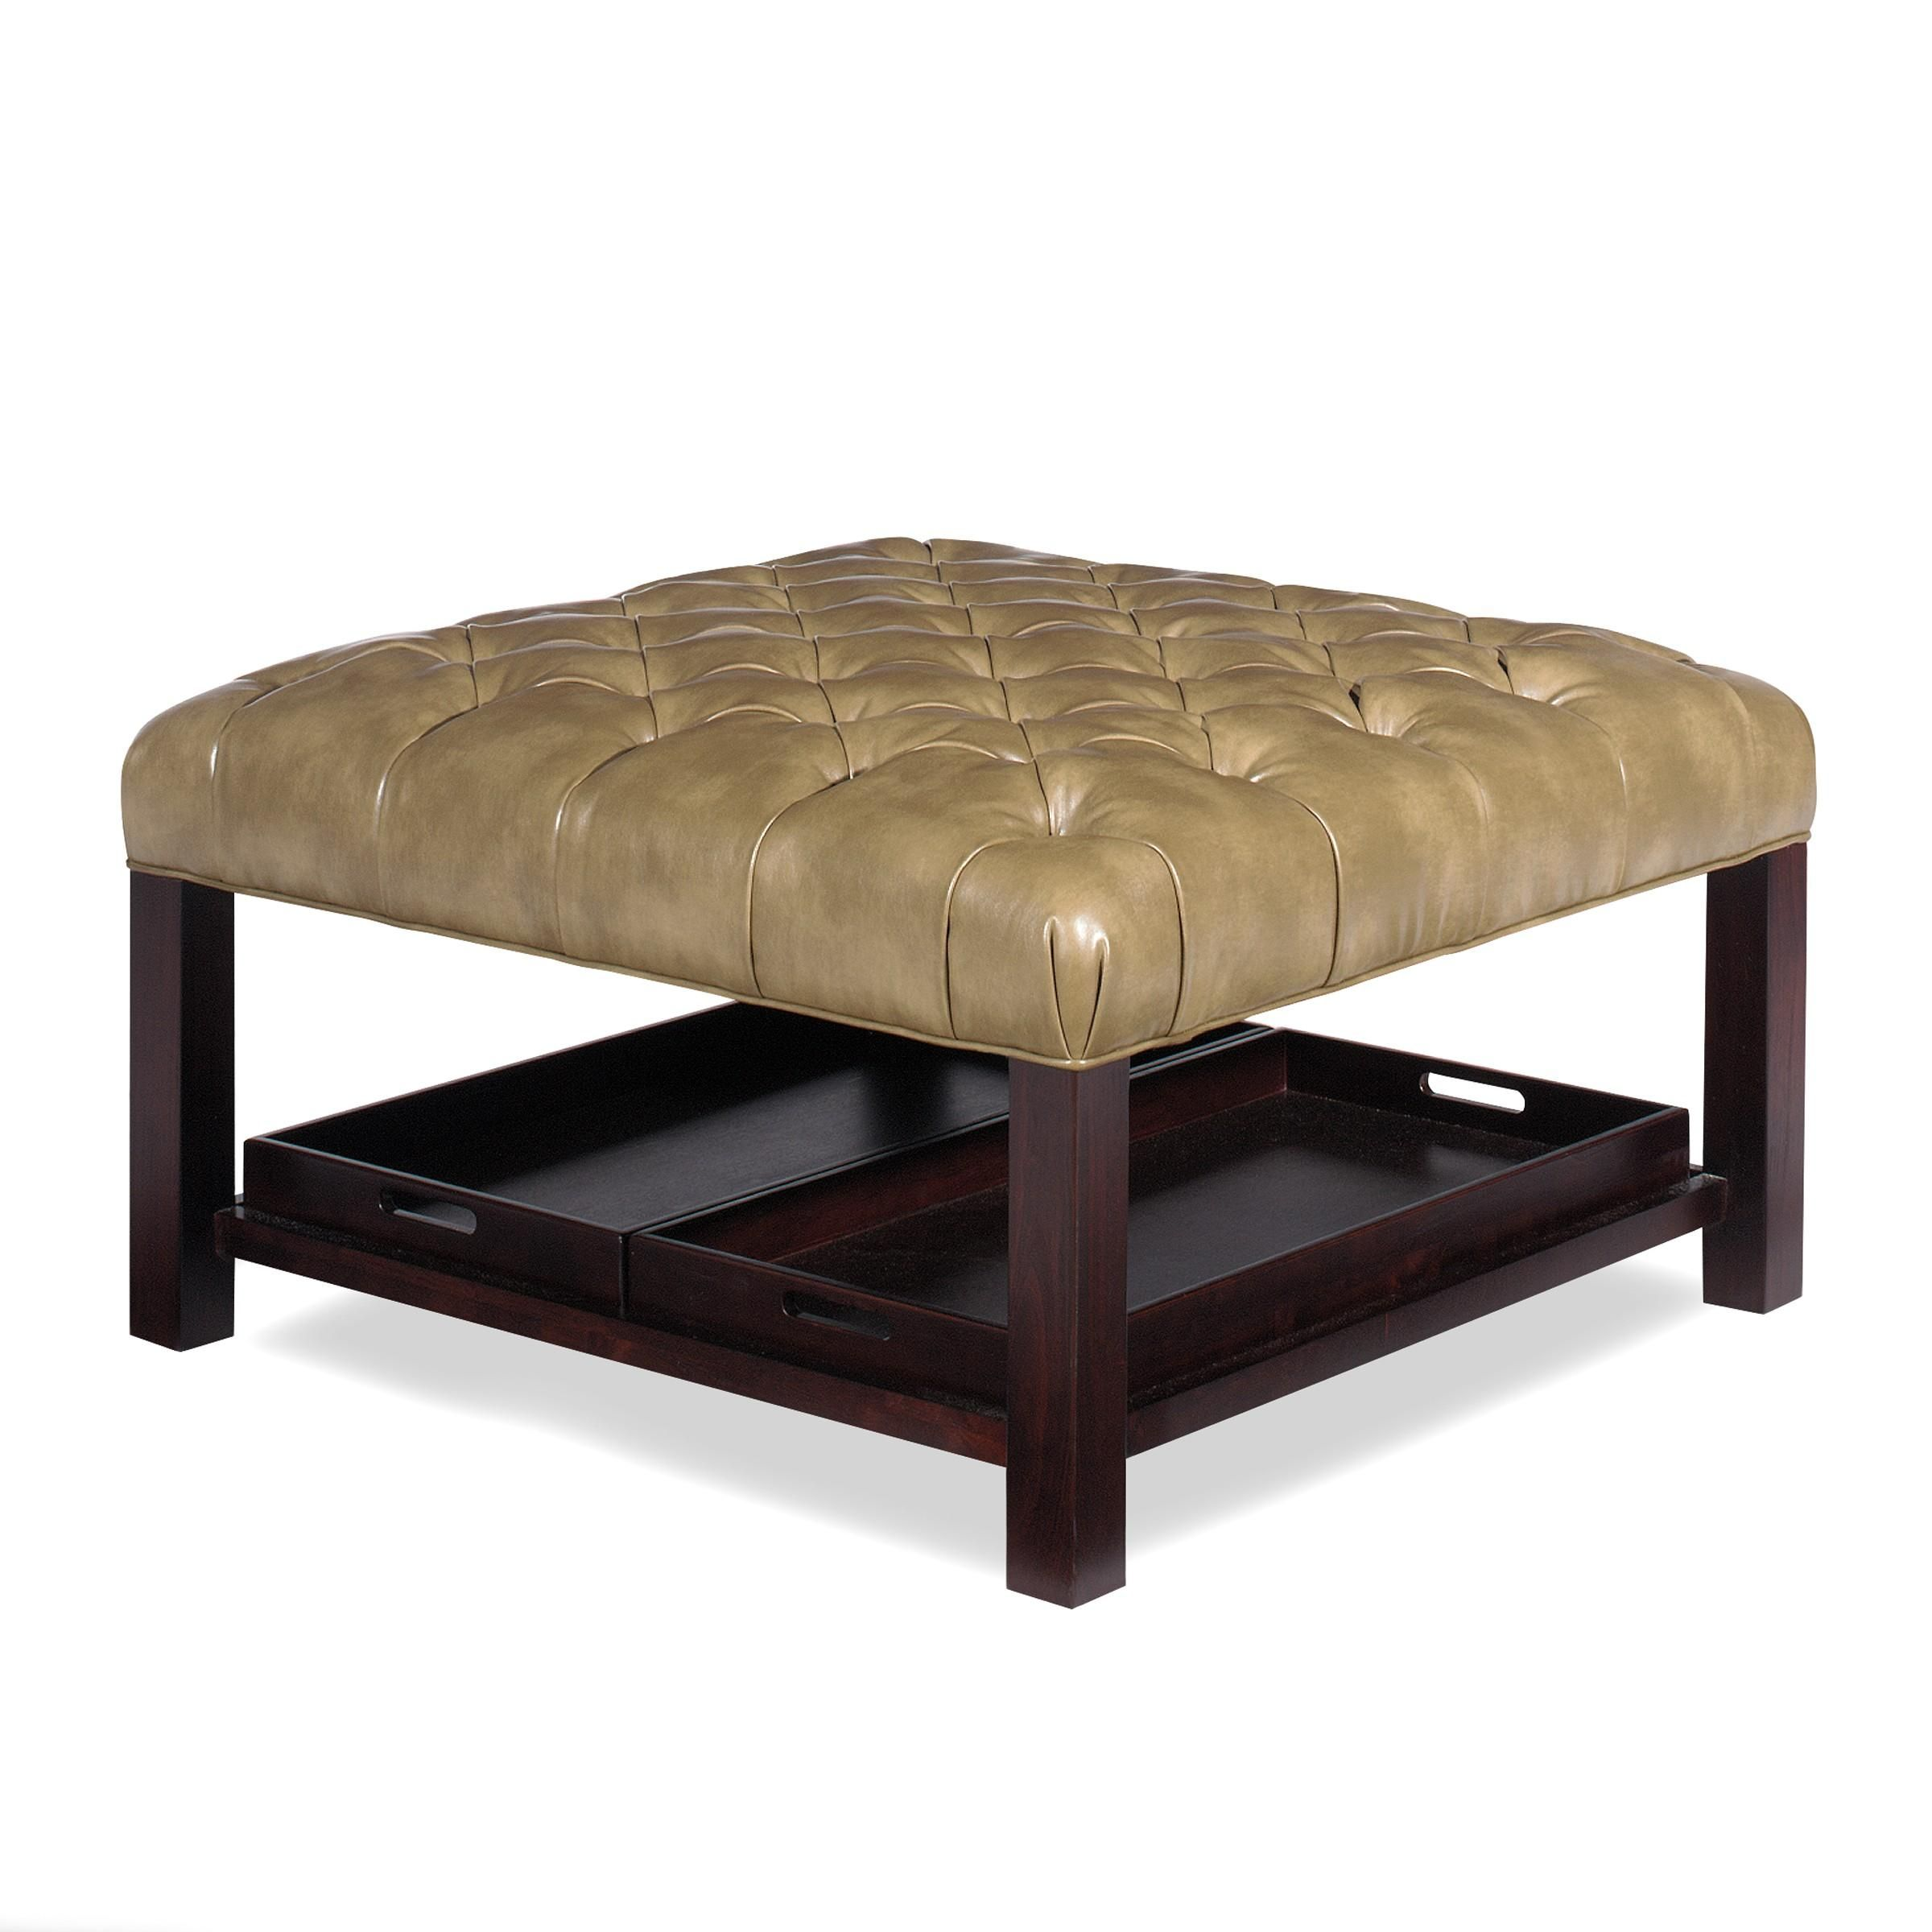 Fabulous Accent Ottomans Ottoman With Storage Trays By Craftmaster Gmtry Best Dining Table And Chair Ideas Images Gmtryco